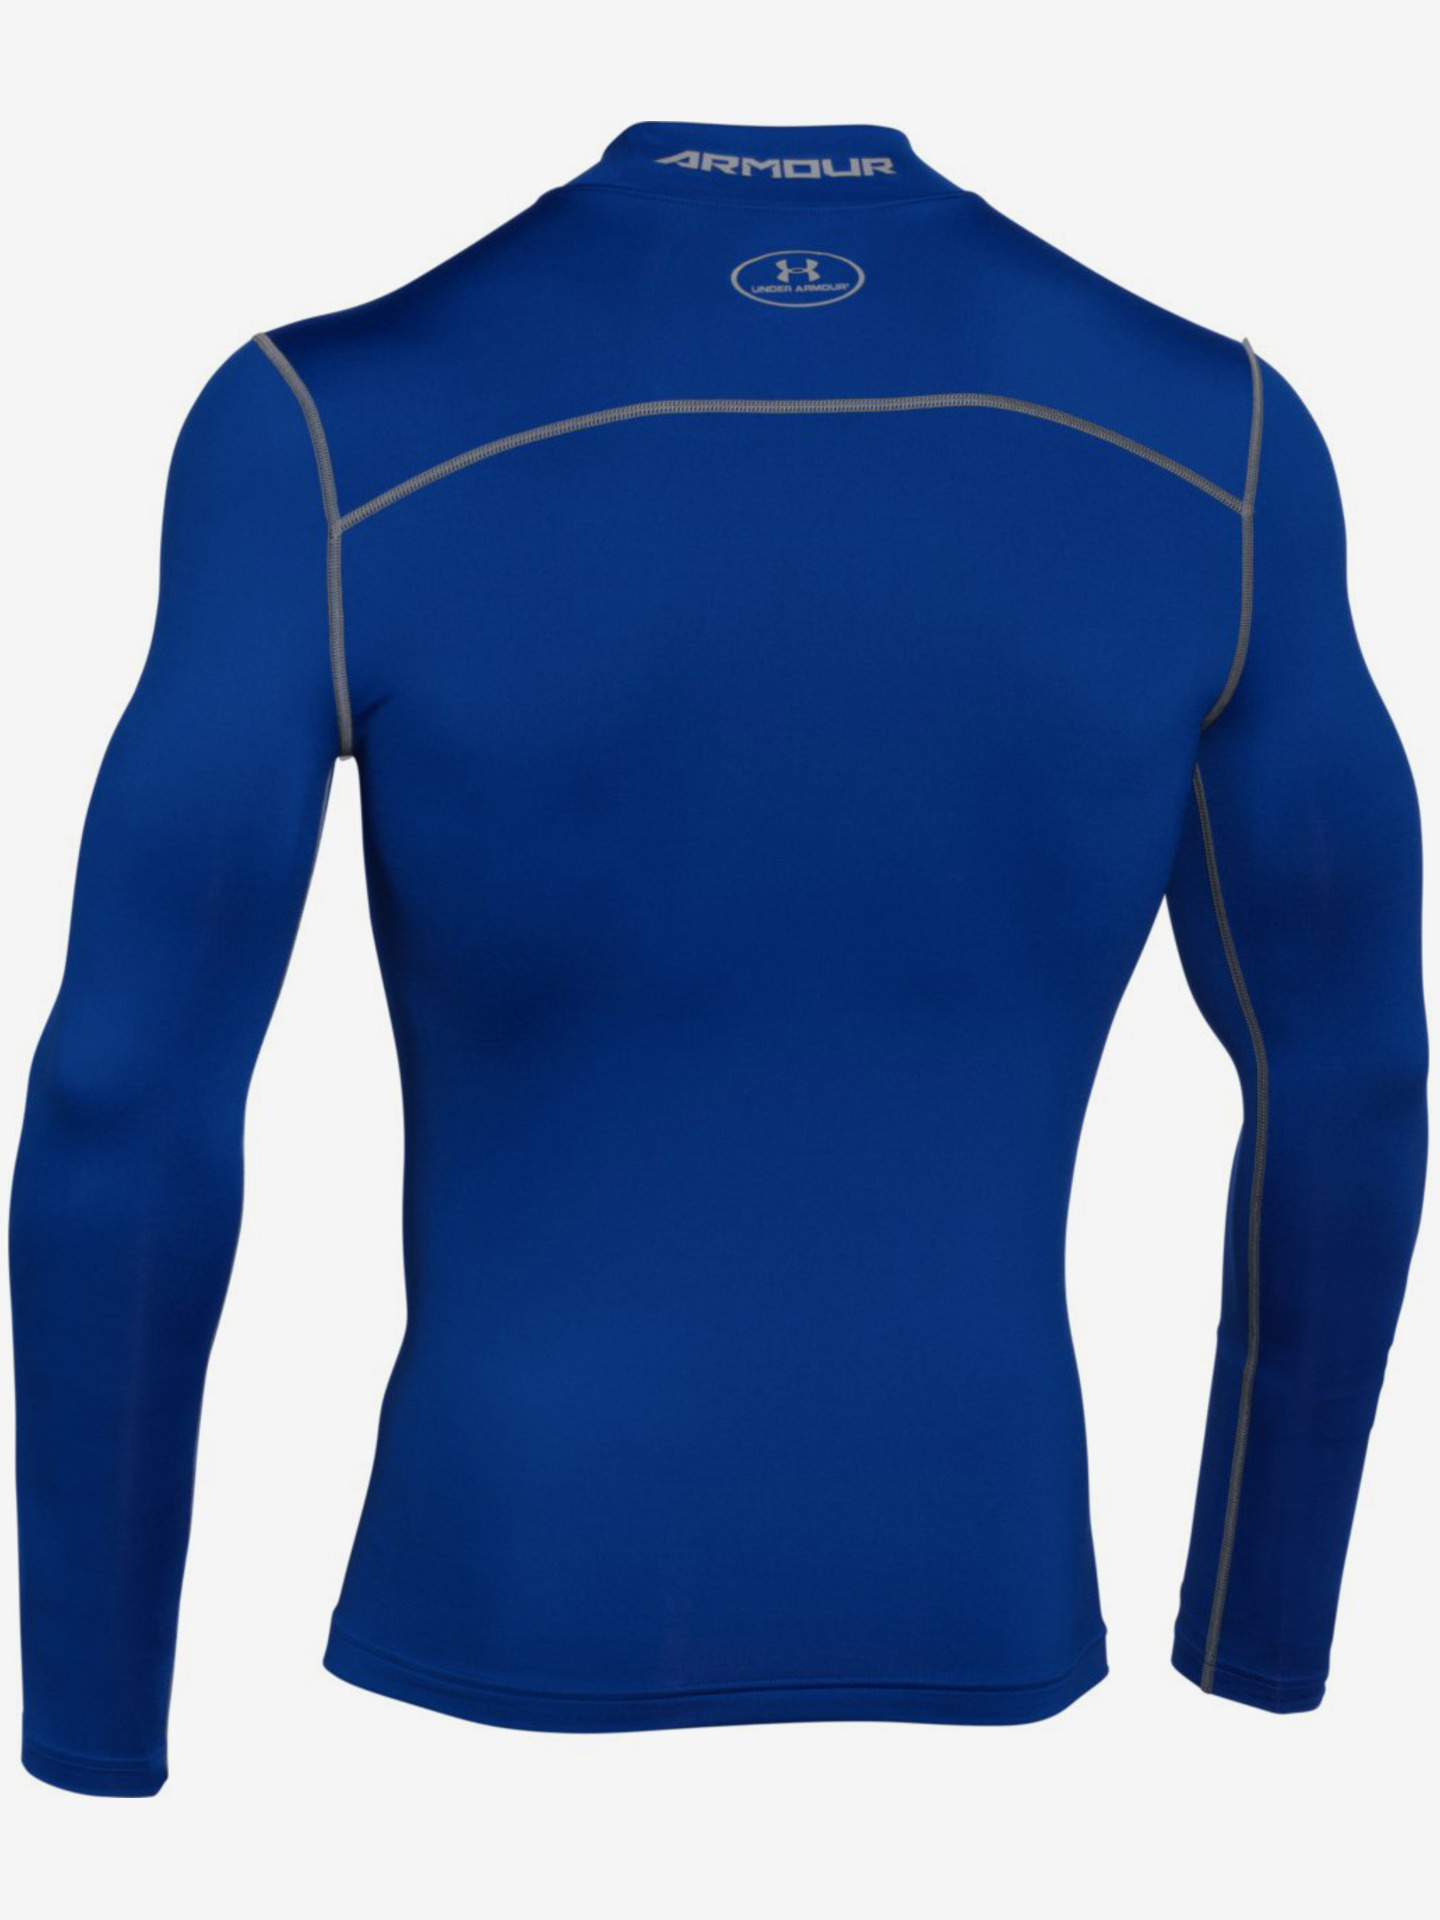 Pánské trička modrá ColdGear® Armour Compression Triko Under Armour (5)